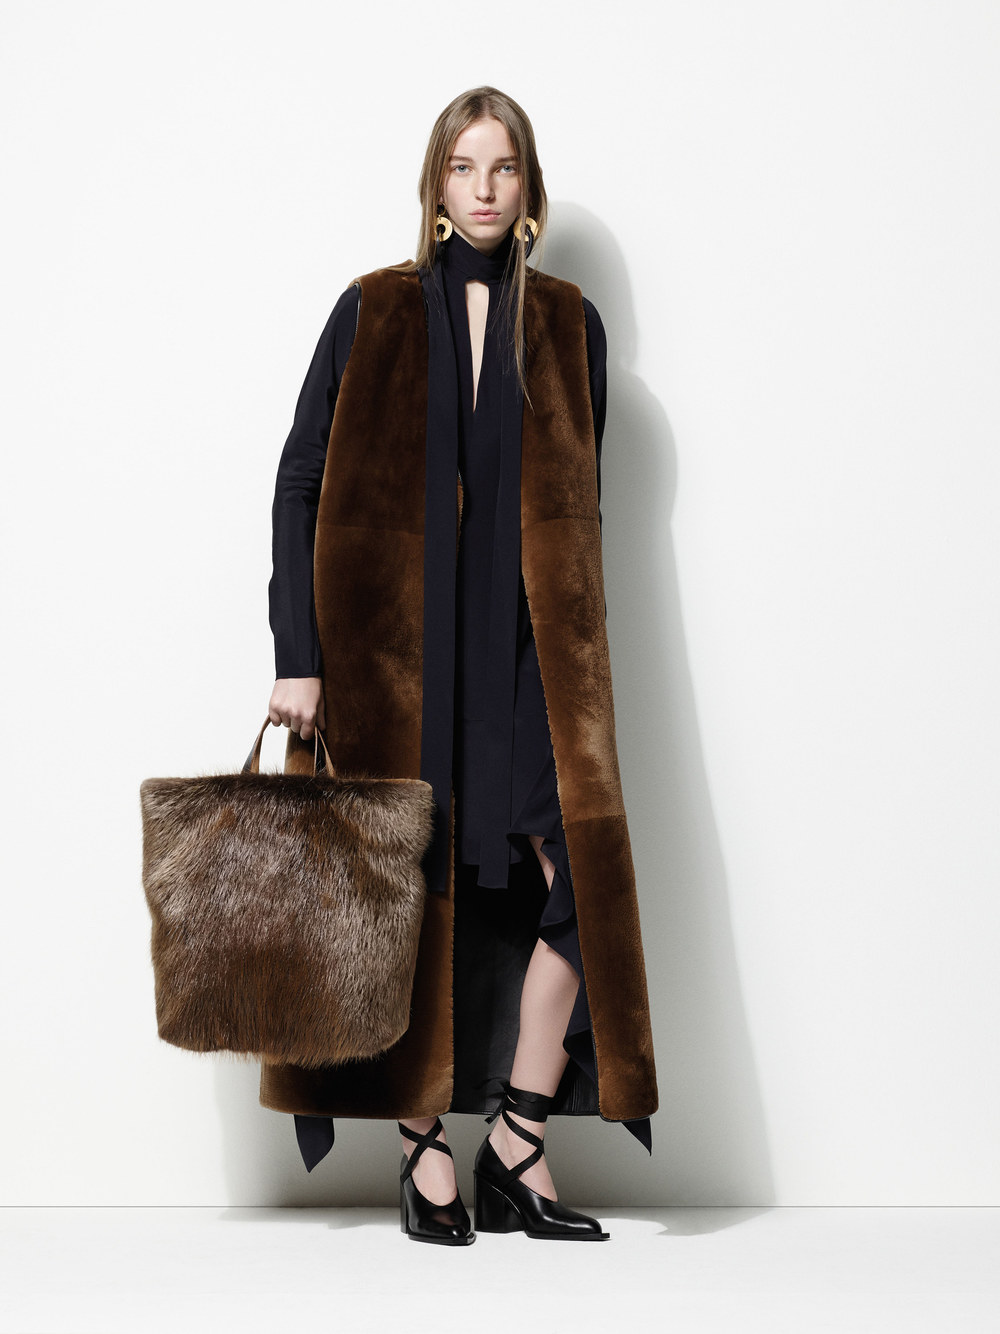 marni-pre-fall-2016-lookbook-11.jpg